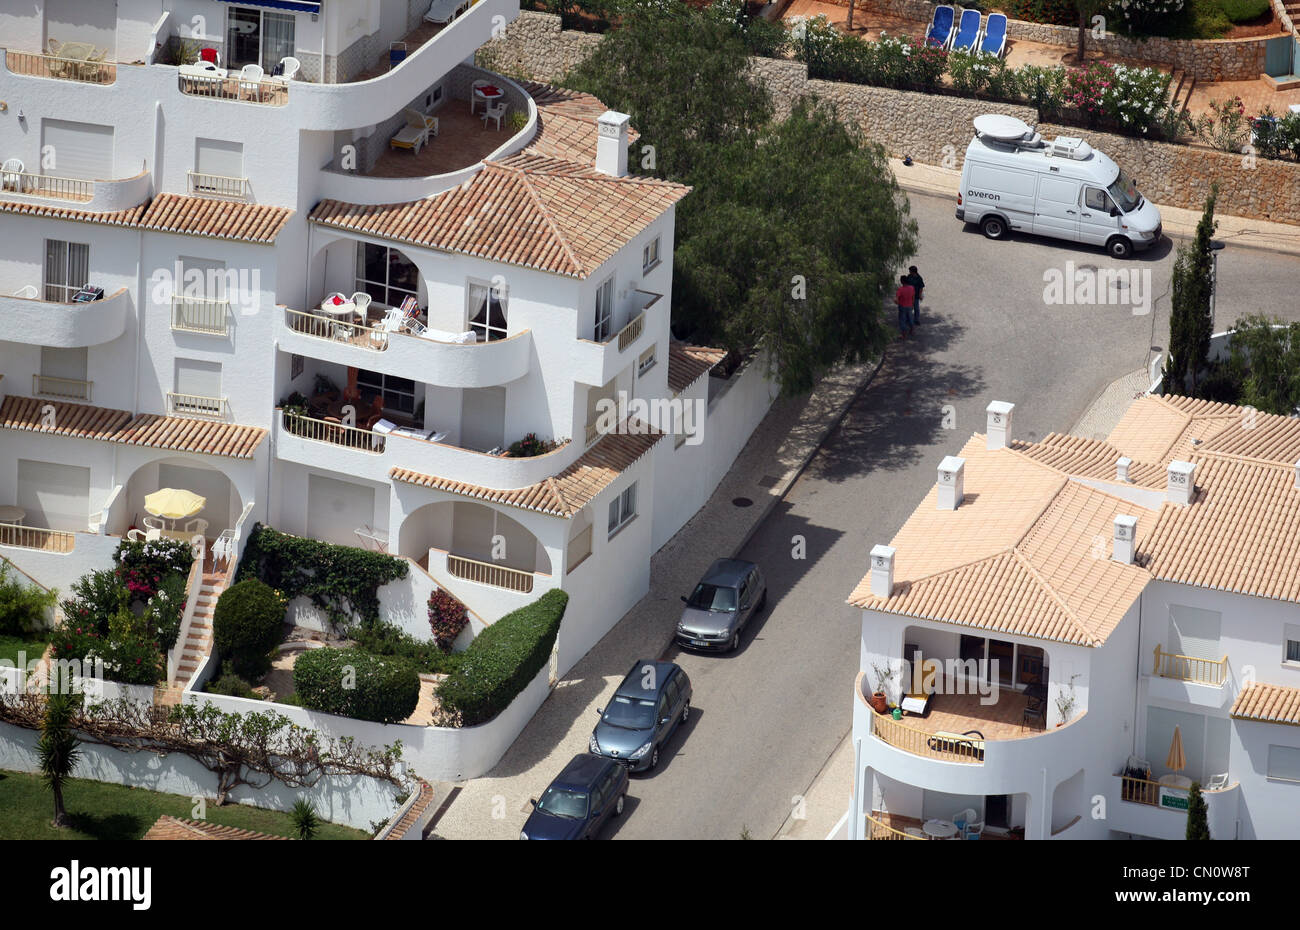 10 REASONS WHICH SUGGEST THAT PAMELA FENN DID NOT HEAR ANY CHILD CRYING ON TUESDAY 1 MAY 2007 - Page 4 The-apartment-ground-floor-of-the-ocean-club-apartments-praia-da-luz-CN0W8T